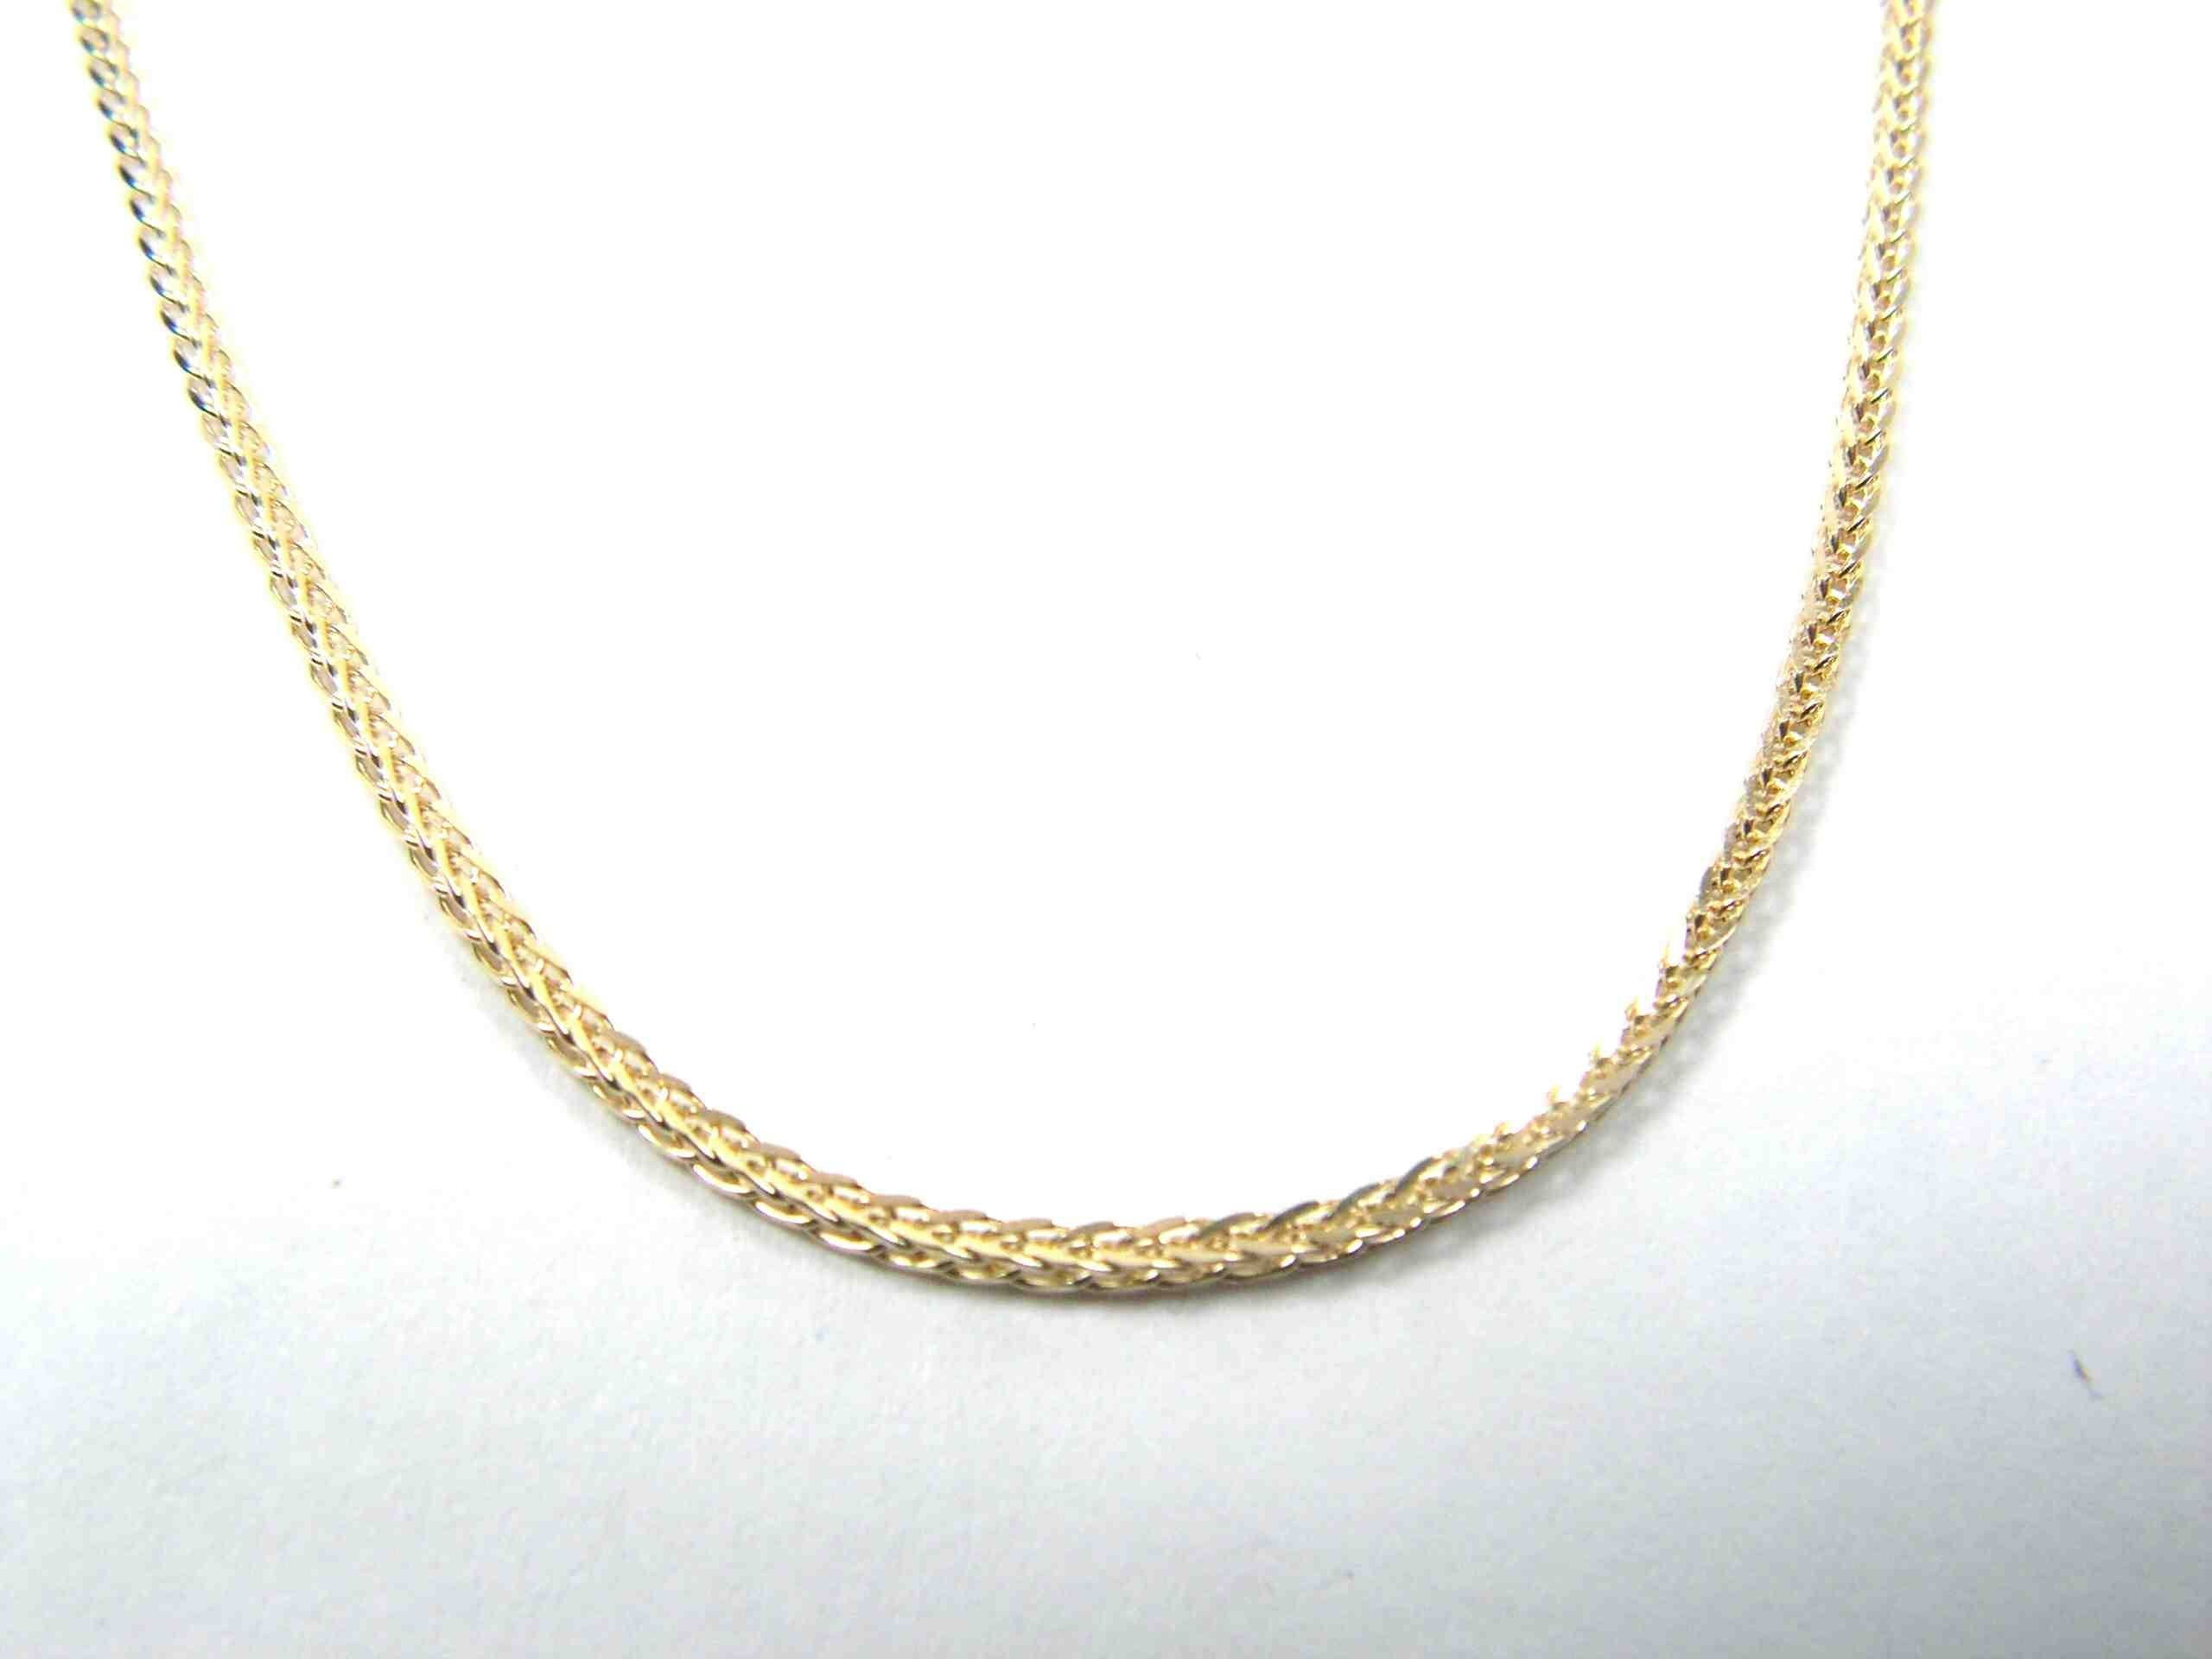 product chain girls necklace alloy for traditional plated women gold chains